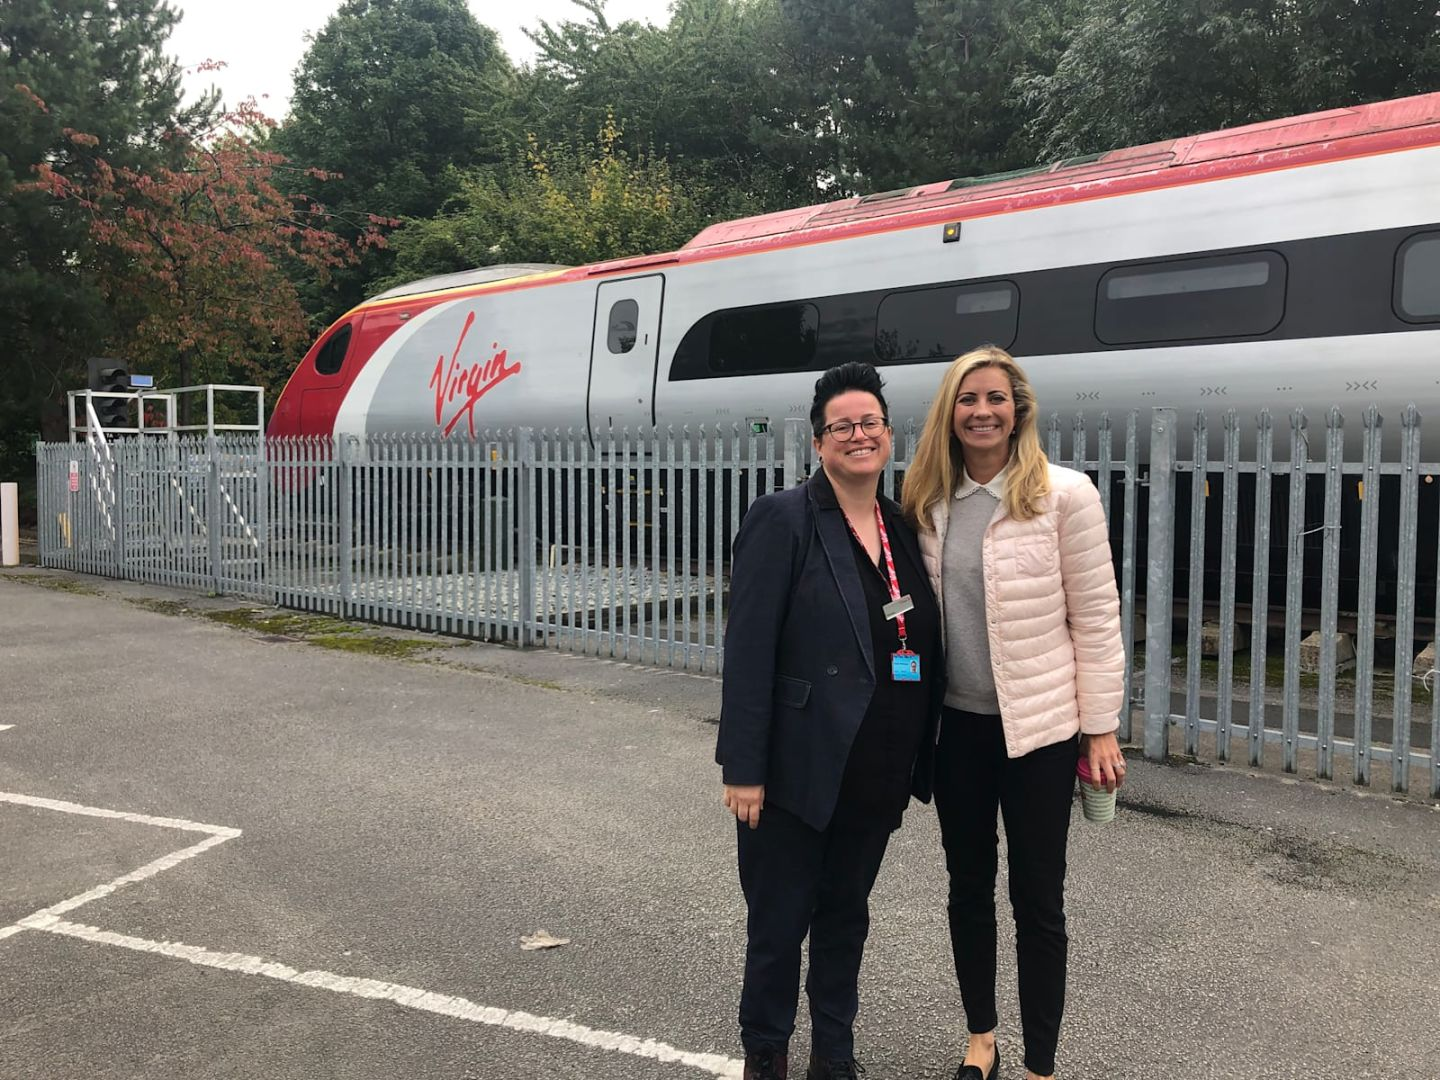 Holly Branson with Vic Whitehouse, smiling at the camera in front of a Virgin Train